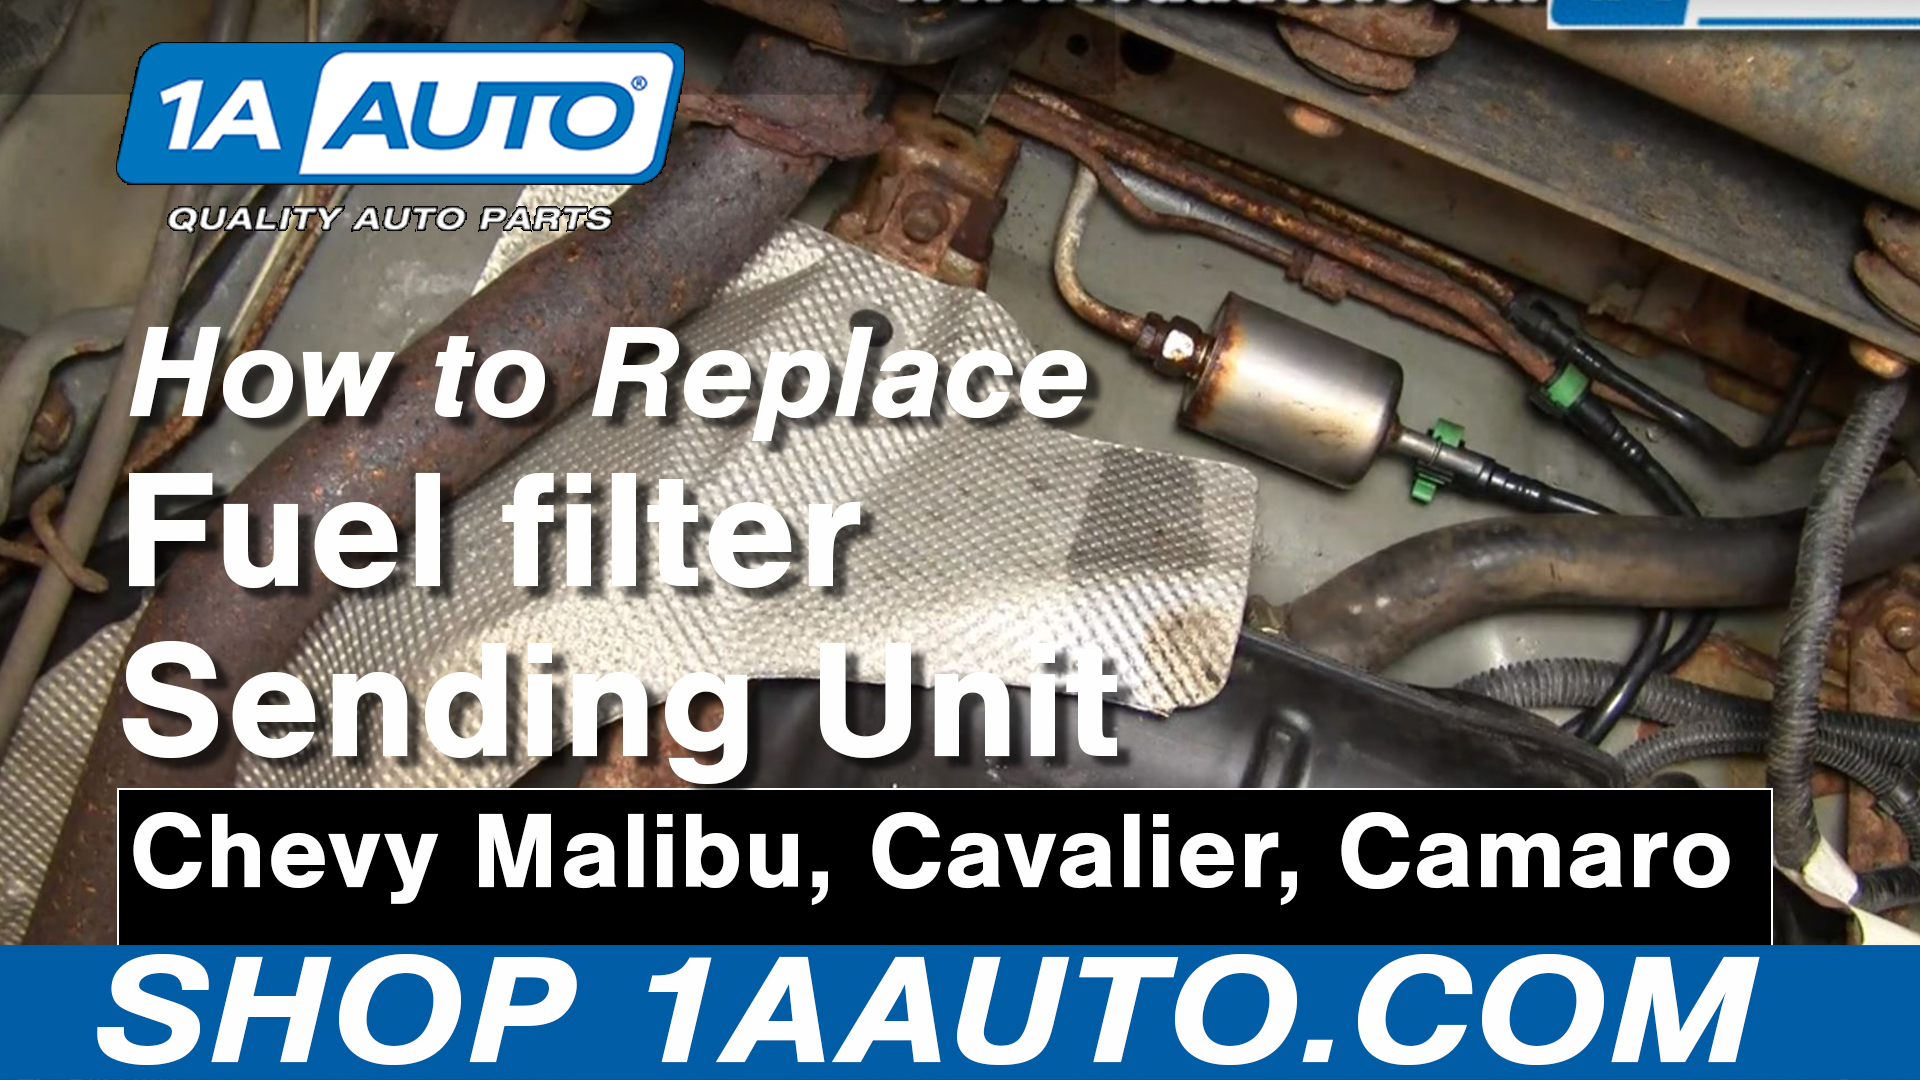 How to Replace Fuel Filter 97-03 Chevy Malibu | 1A Auto1A Auto